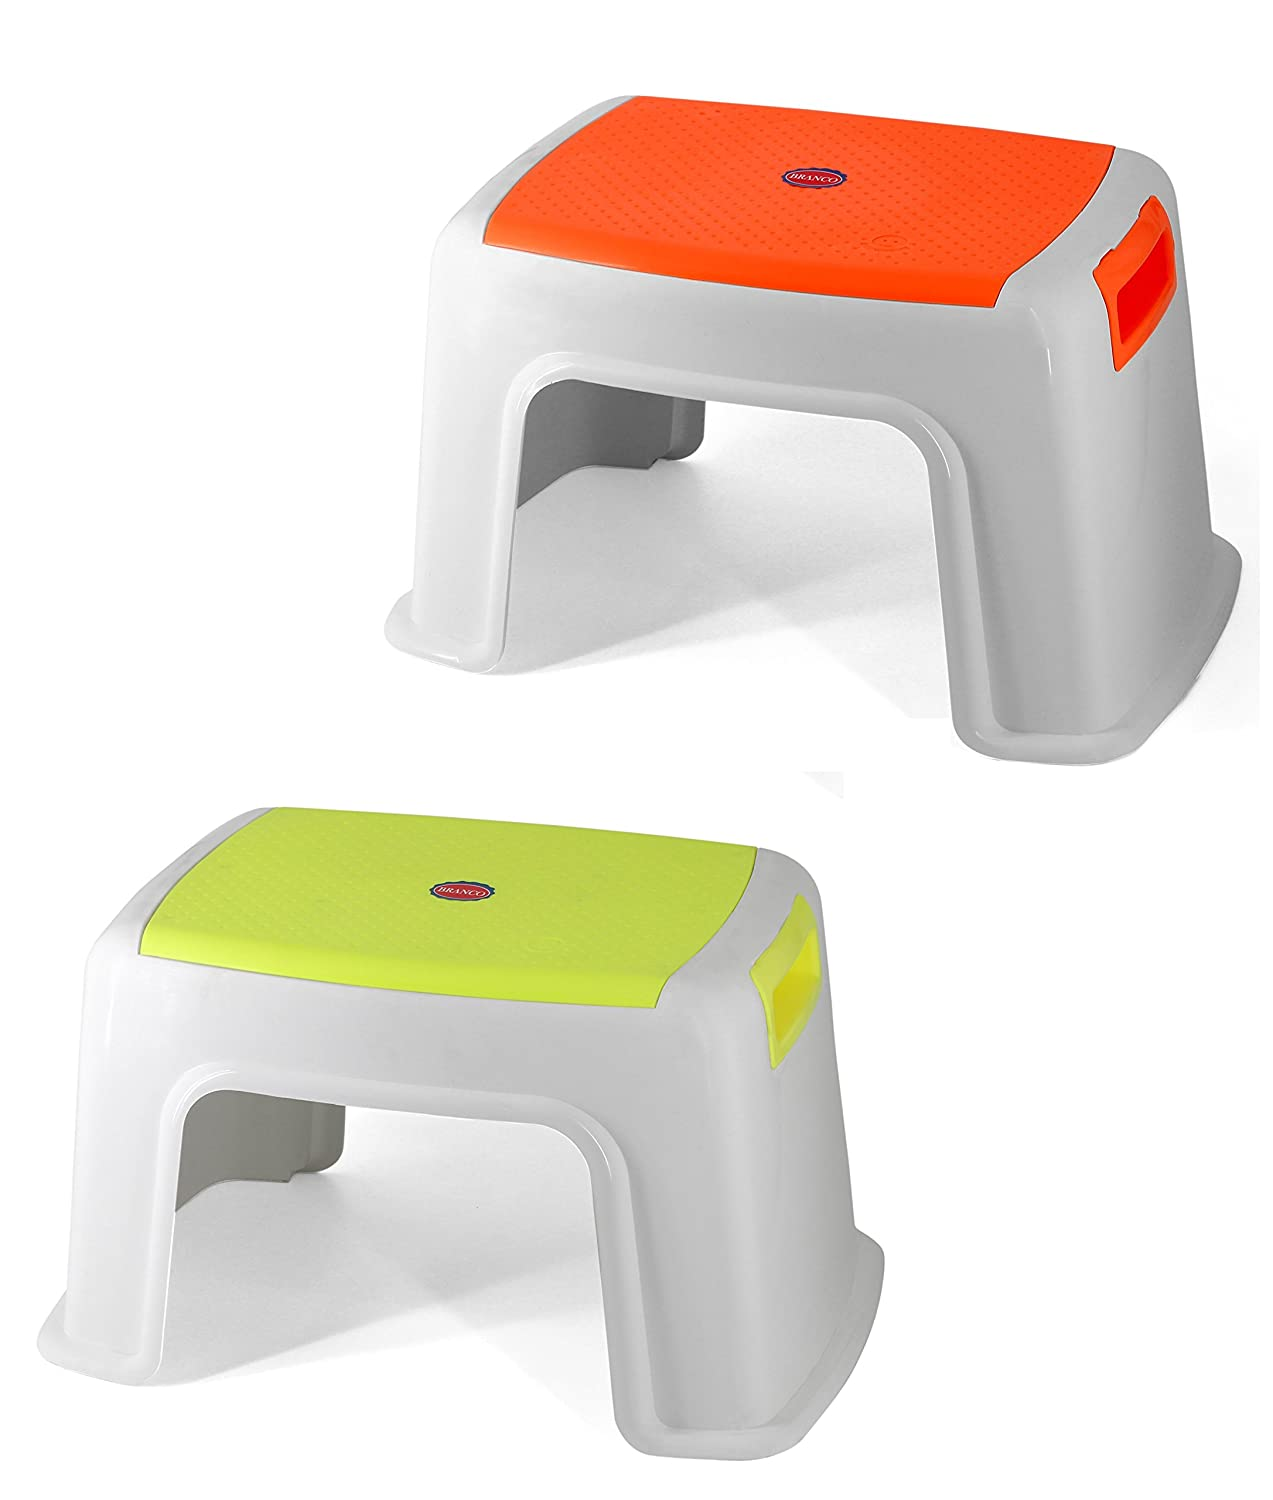 Ciplaplast Bathroom Plastic Stool   Toto (Assorted Colors): Amazon.in: Home  U0026 Kitchen